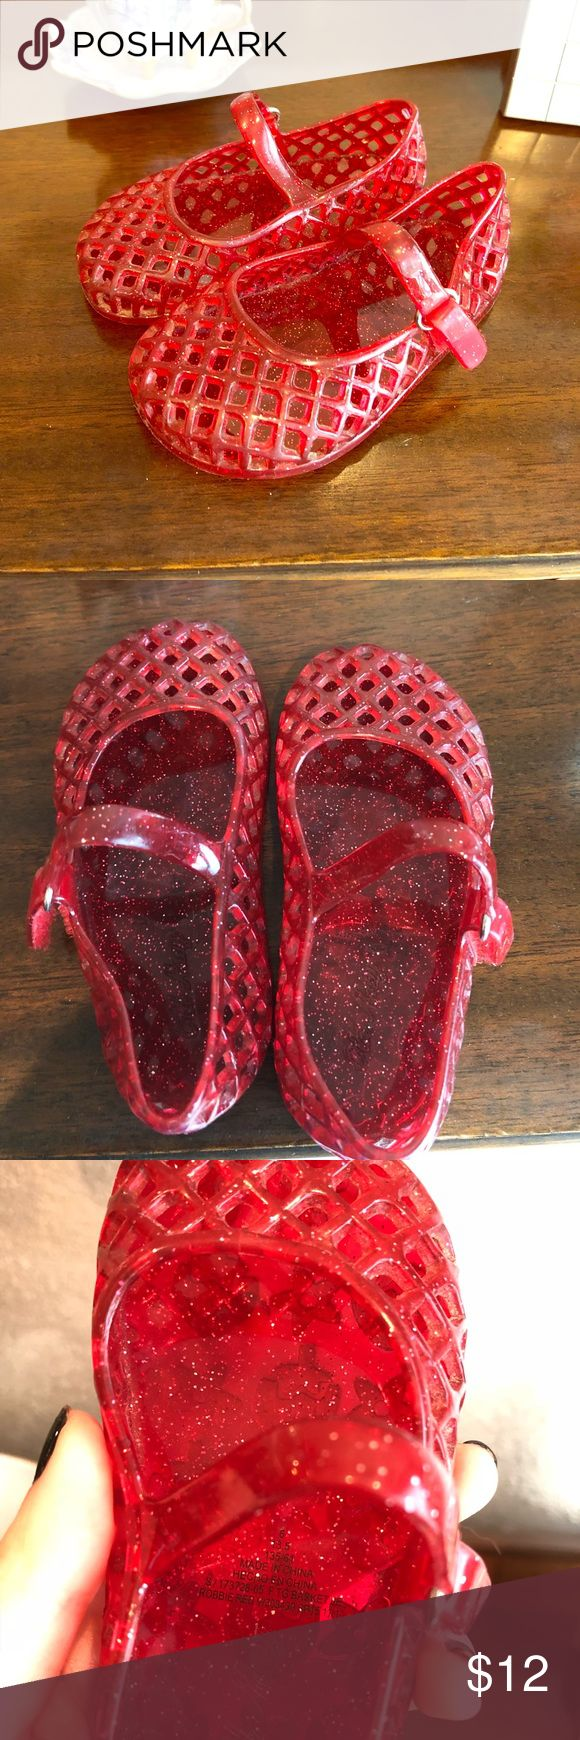 Best 25 Jelly Sandals Ideas On Pinterest Sandals With